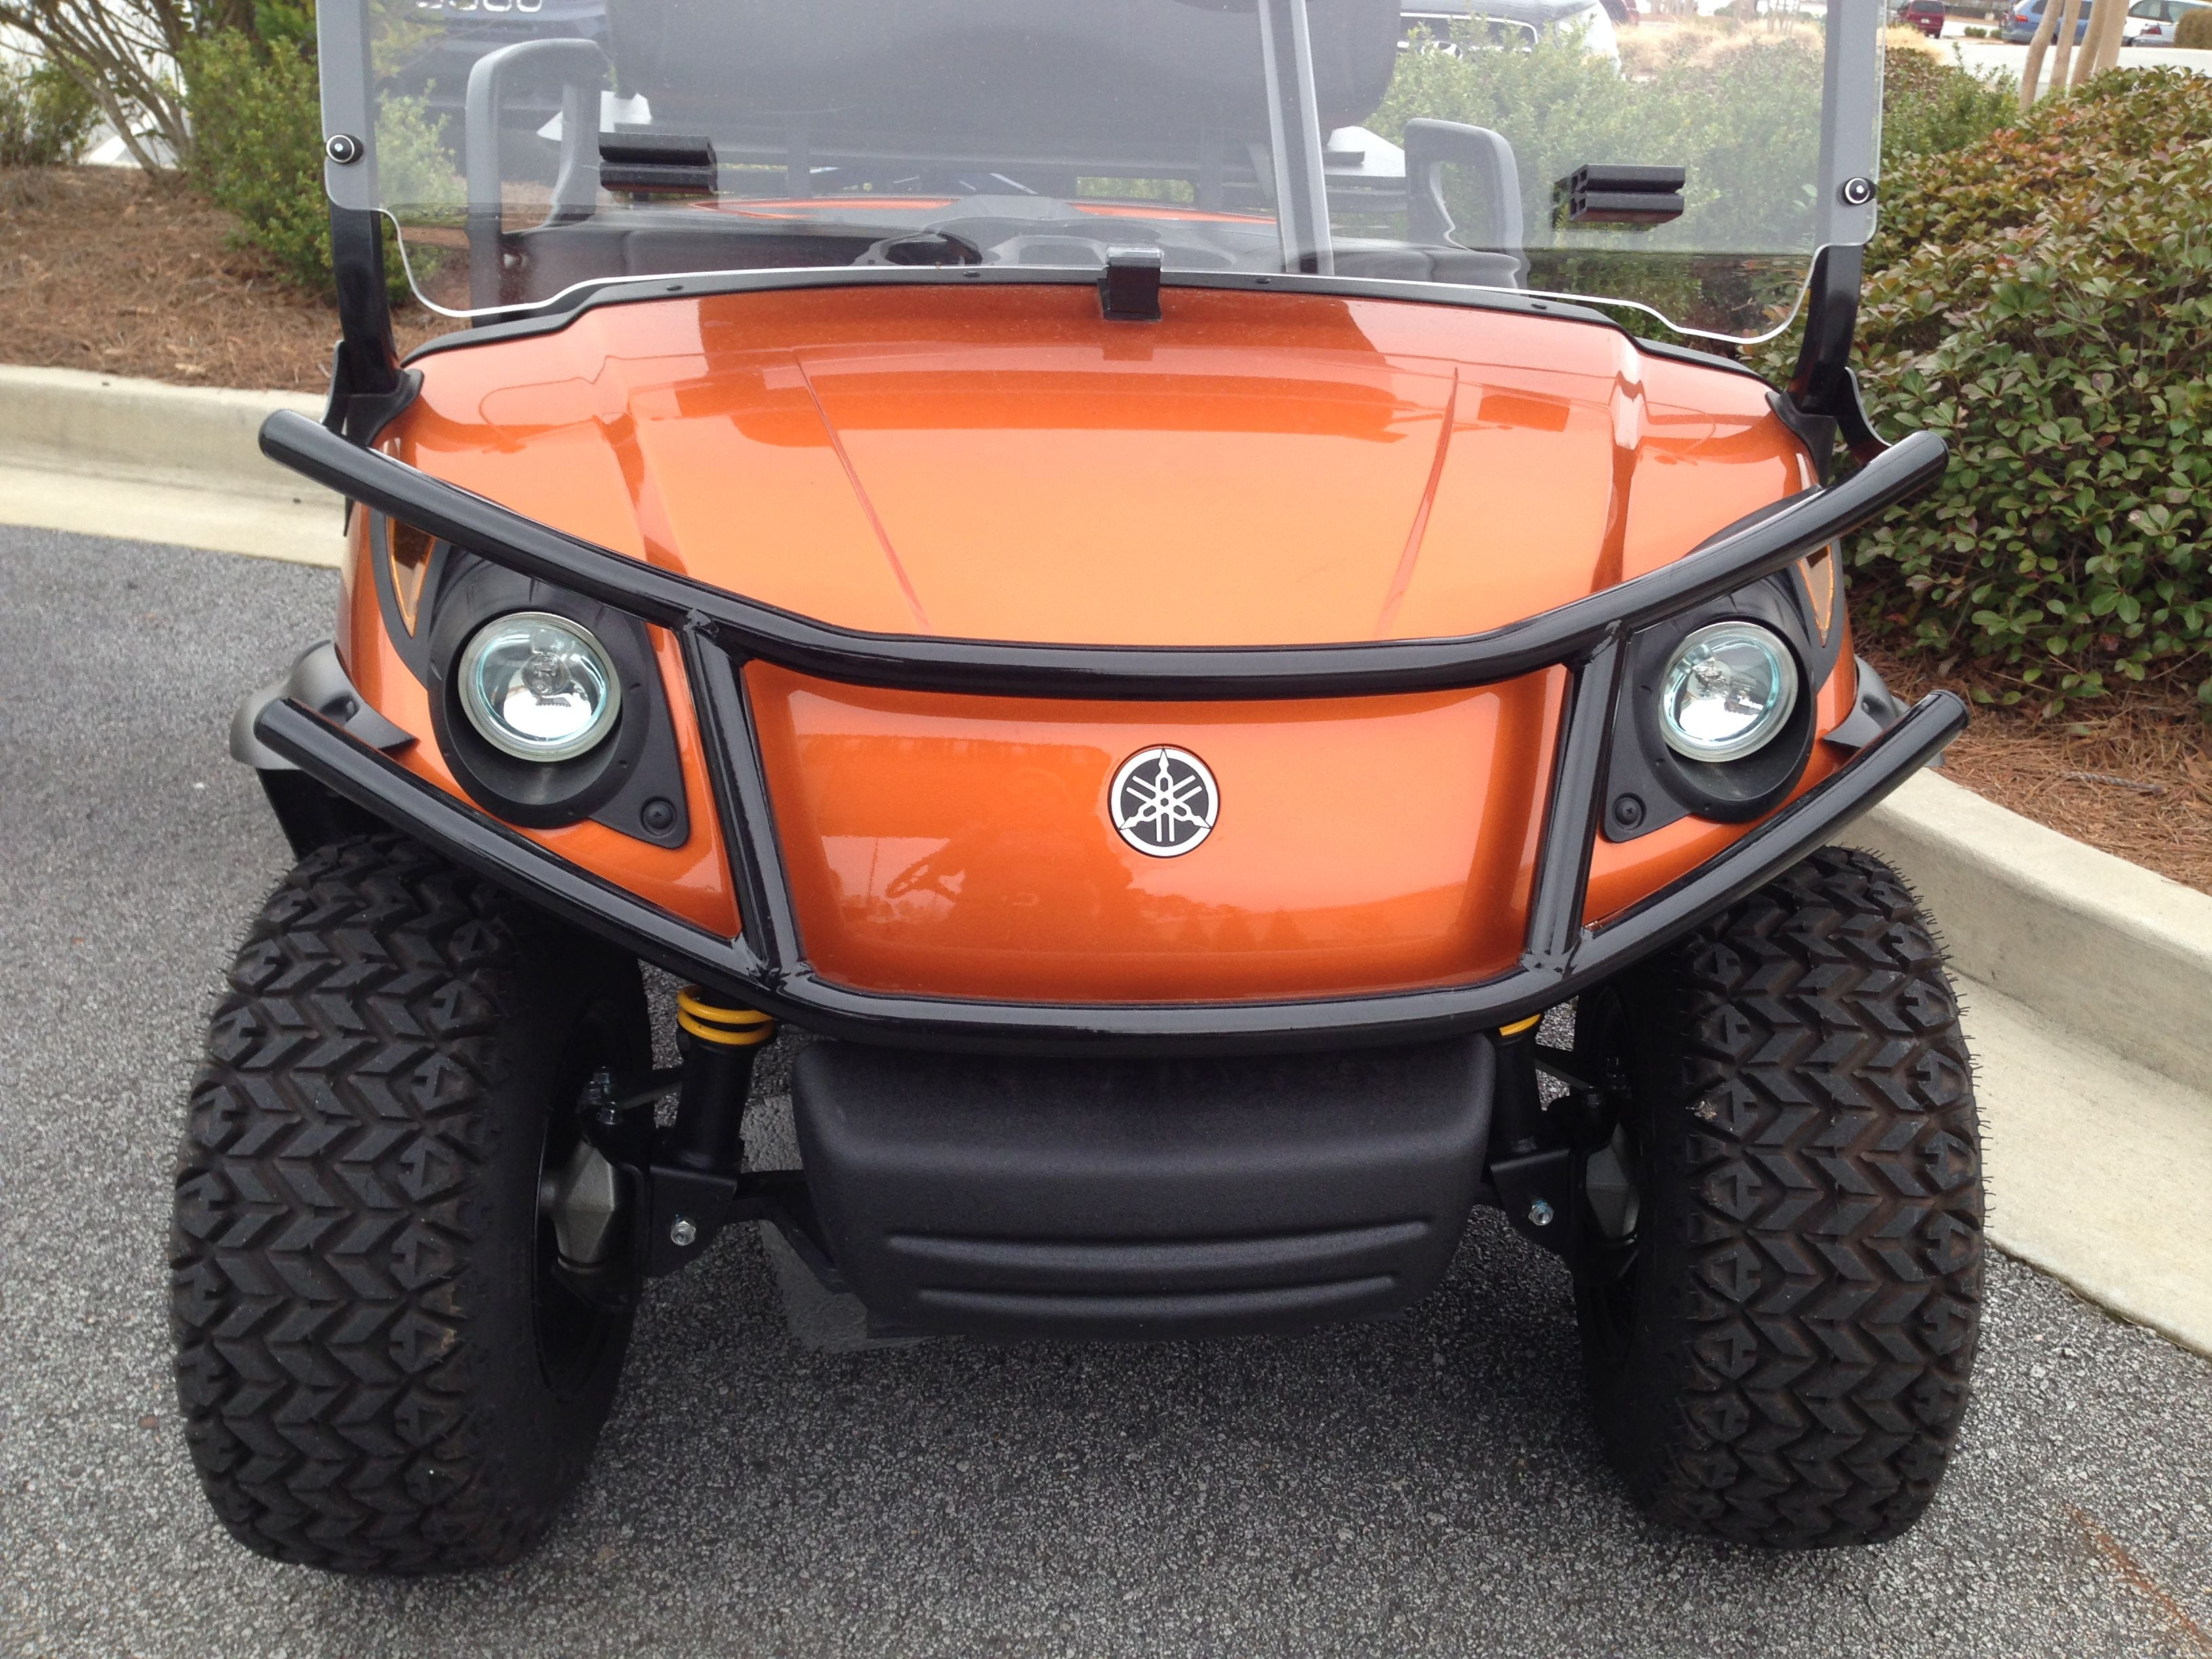 Yamaha golf cart accessorizes like brush guards and fender flares customize  your cart to create your own unique look and style.  #yamahagolfcartaccessories